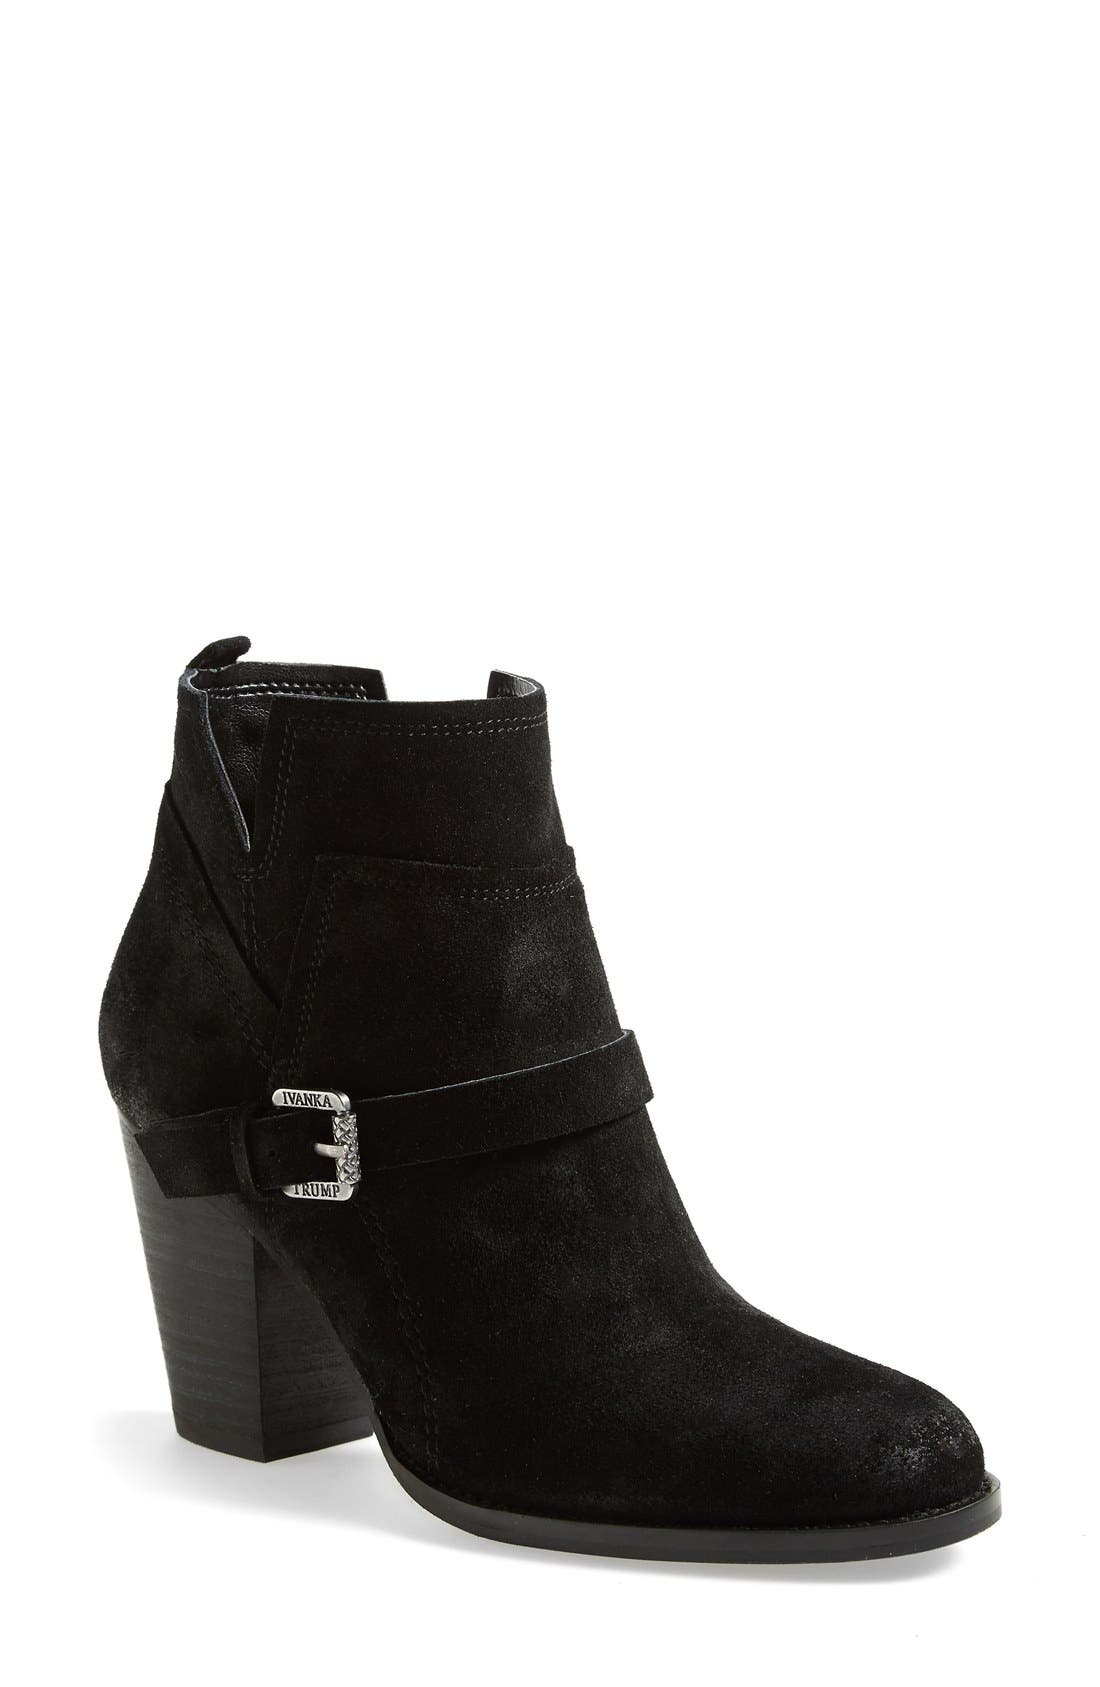 Main Image - Ivanka Trump 'Frankly' Belted Round Toe Bootie (Women)